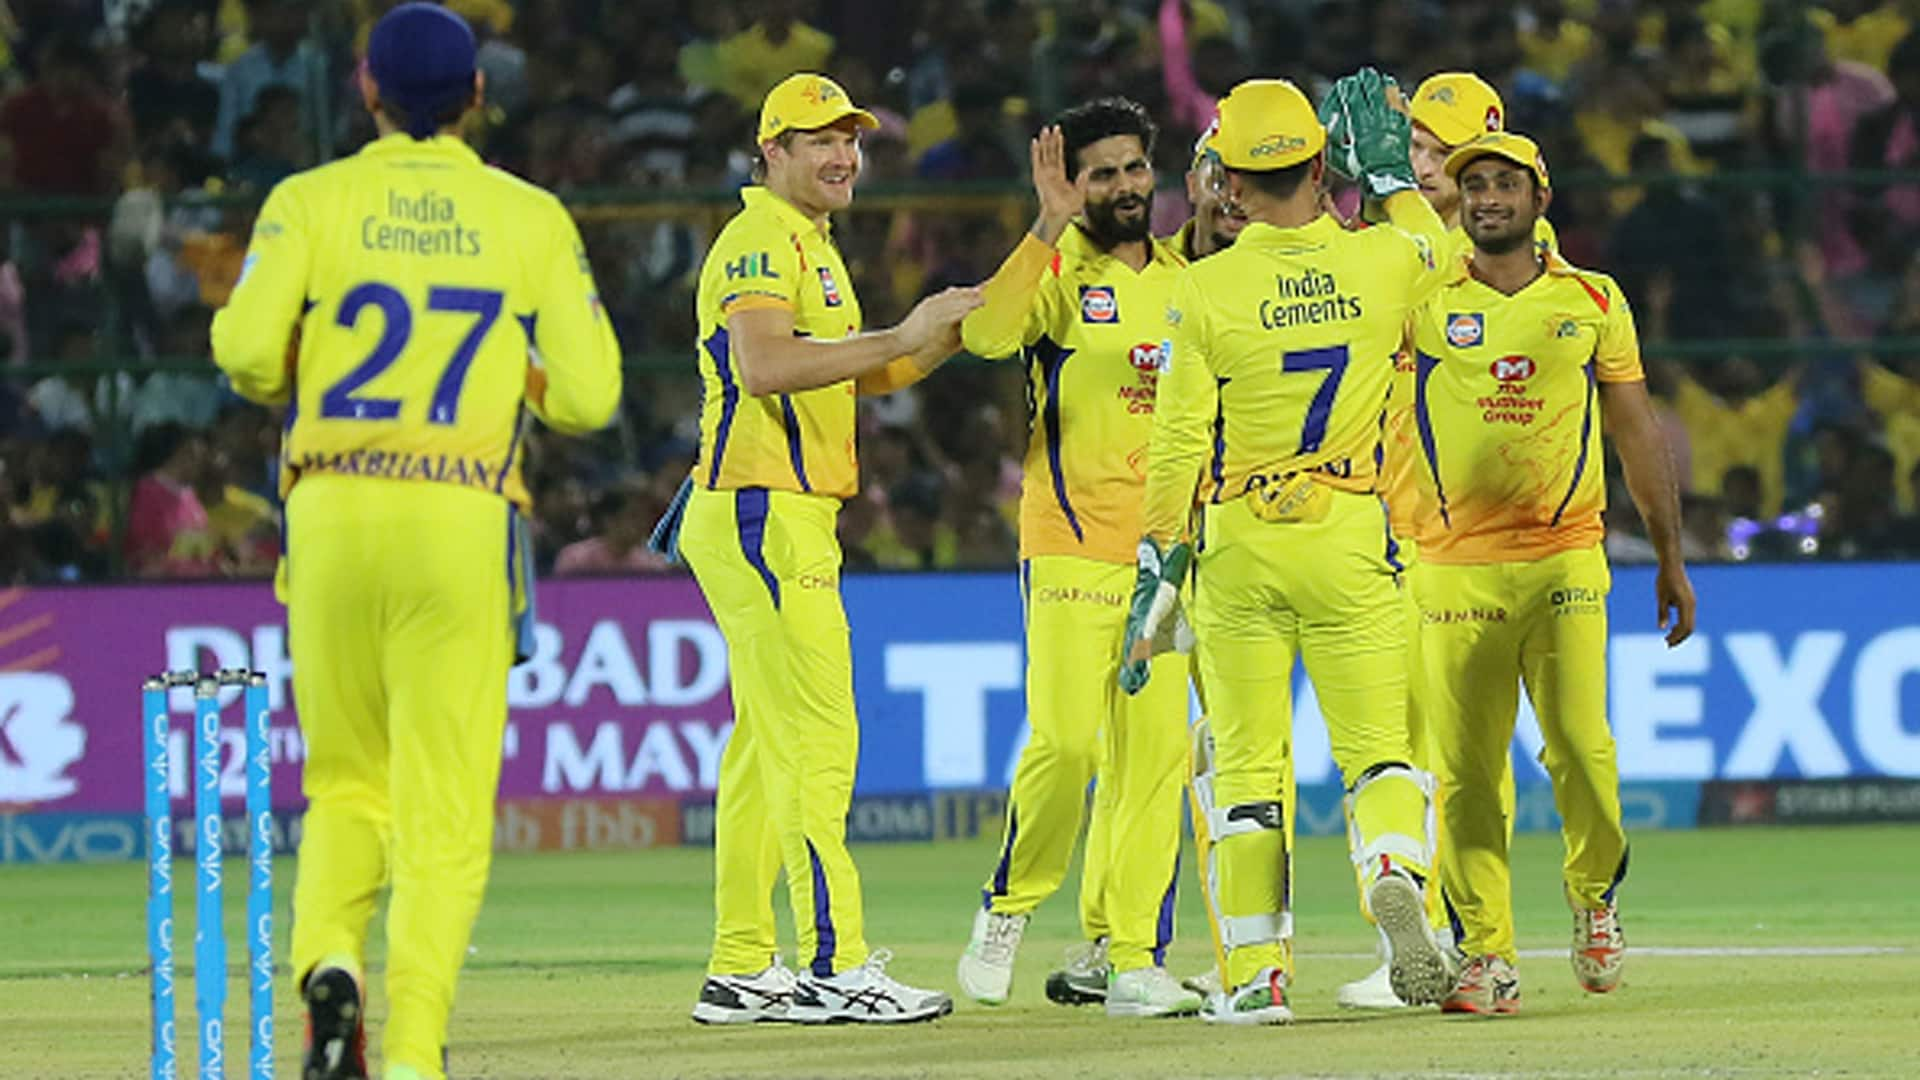 CSK has now broken this RCB's record in IPL